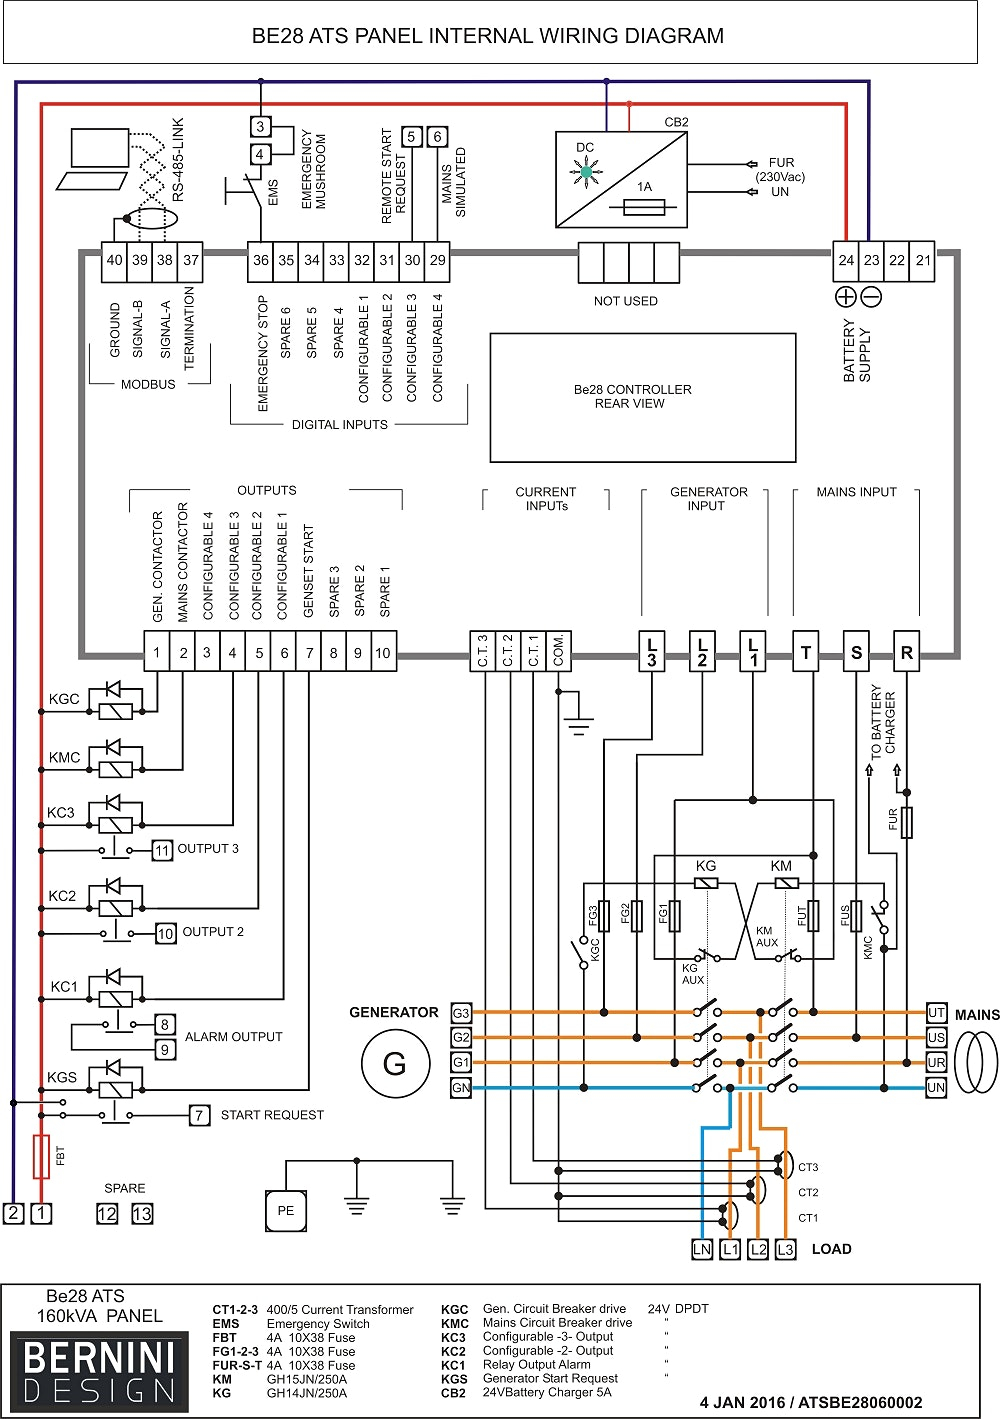 DIAGRAM] Photocell Control Wiring Diagram FULL Version HD Quality Wiring  Diagram - 1WIRINGTELECASTER1.LALIBRAIRIEDELOUVIERS.FR1wiringtelecaster1.lalibrairiedelouviers.fr